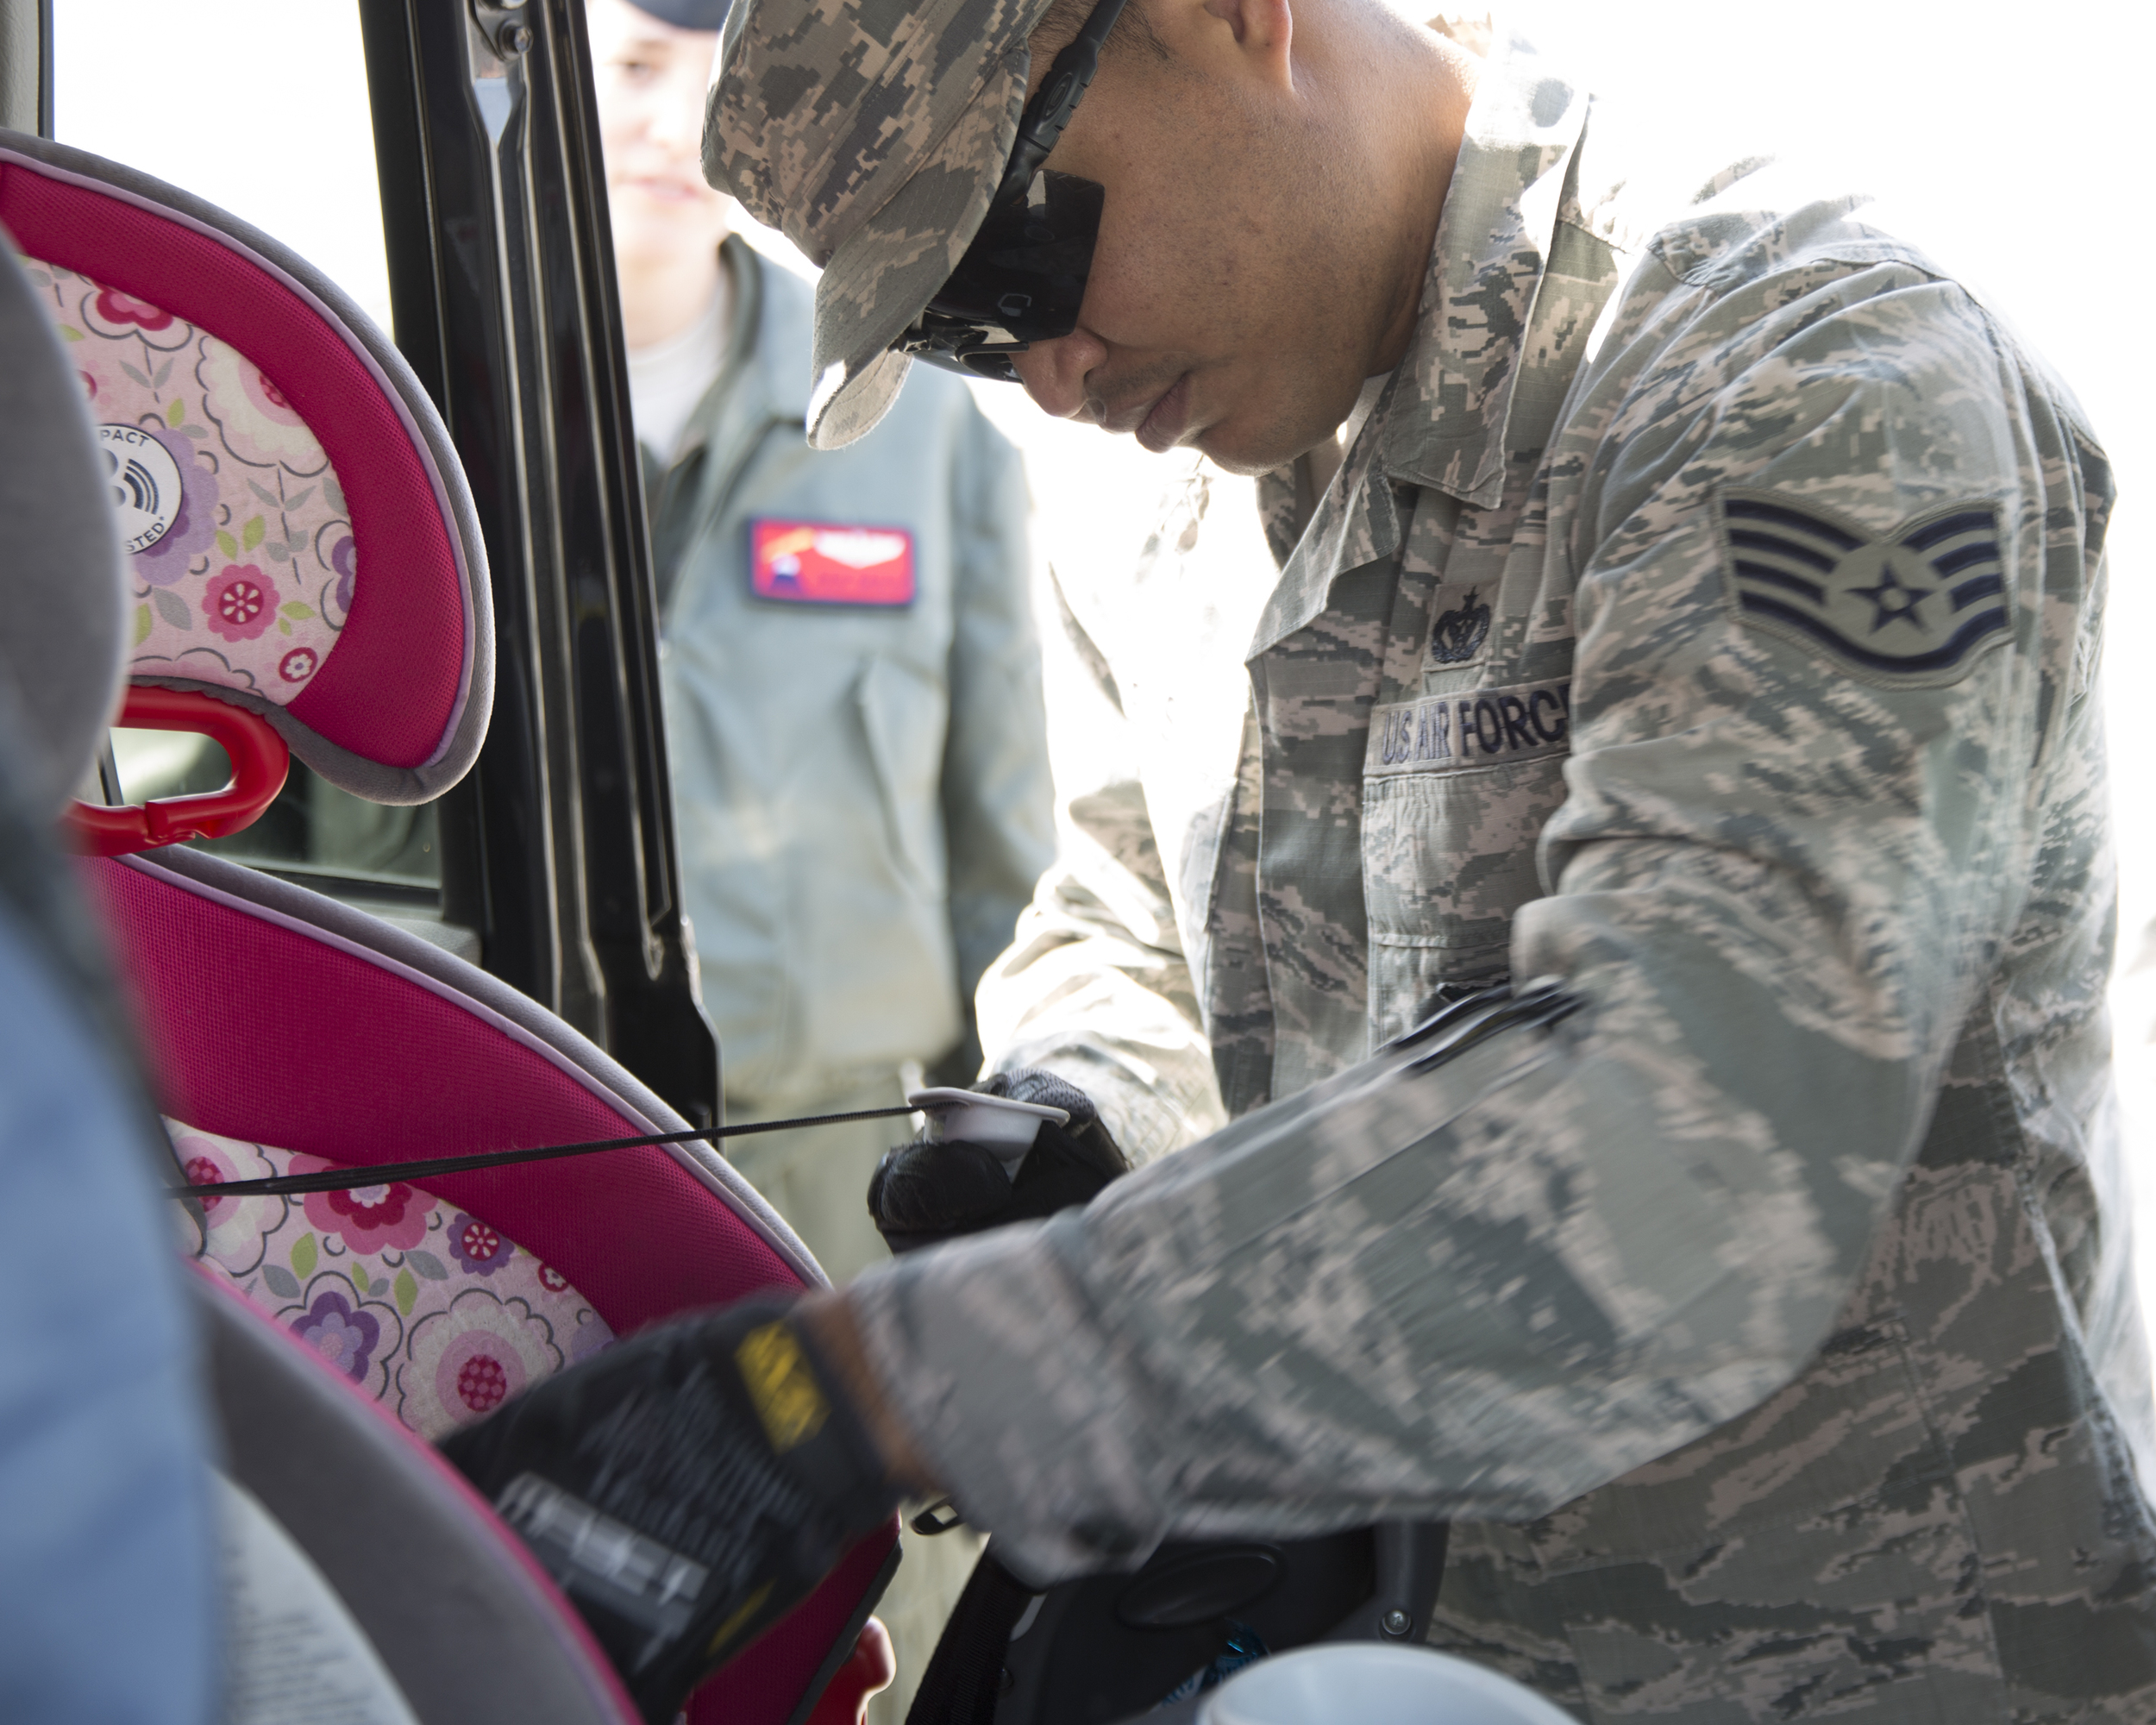 Staff Sgt. Trevor Alexis, 374th Civil Engineer Squadron fire department NCO in charge of training, inspects a child safety seat for a driver at Yokota Community Center, March 4, 2015. Alexis is a certified child passenger safety technician. (U.S. Air Force photo by Osakabe Yasuo/Released)